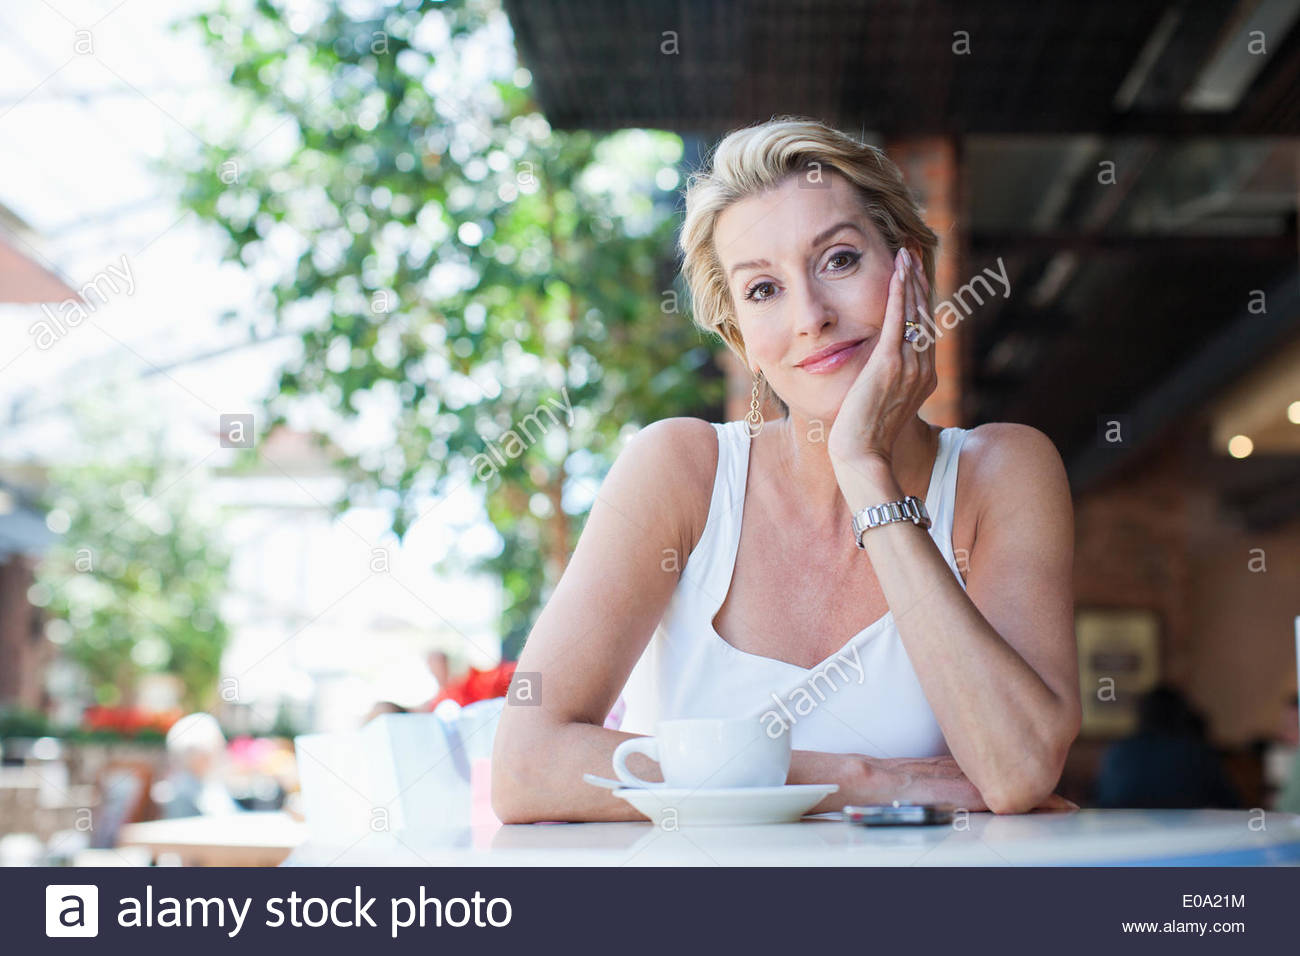 Woman drinking coffee in cafe - Stock Image